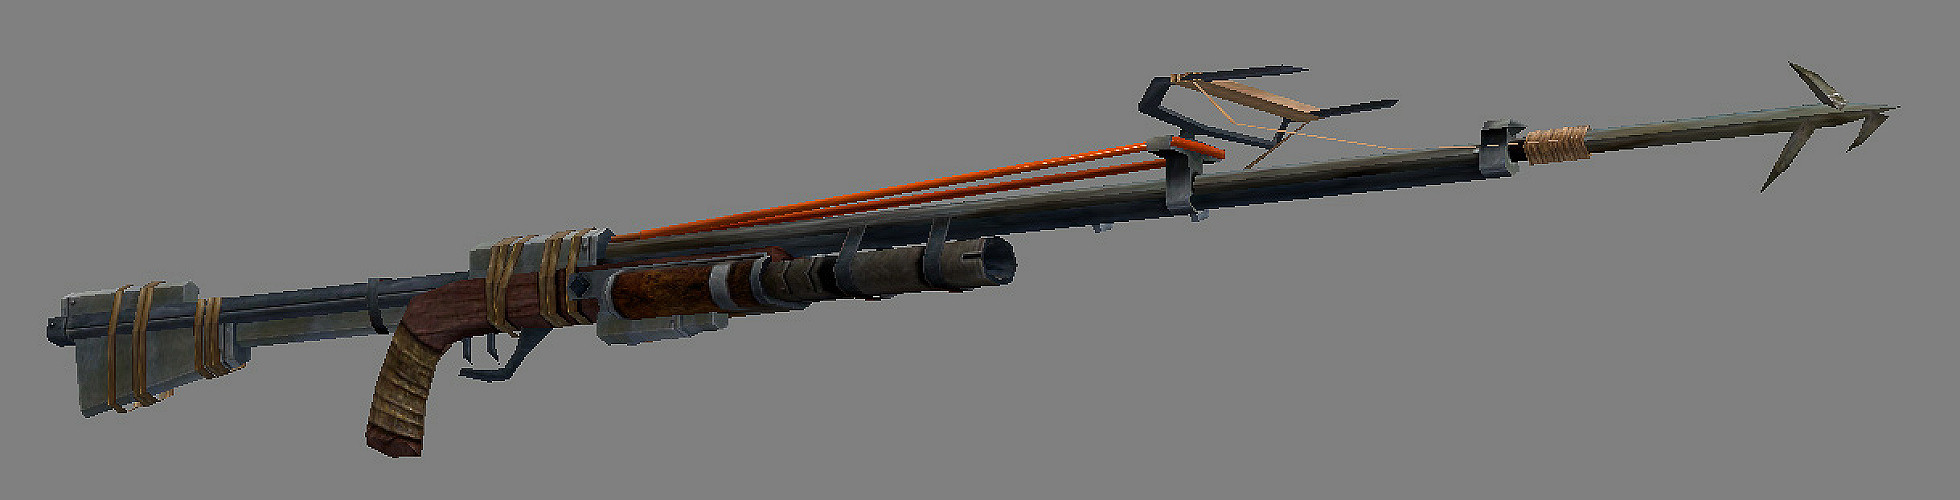 I modeled and textured the weapon based on a design by M.C. Barrett.